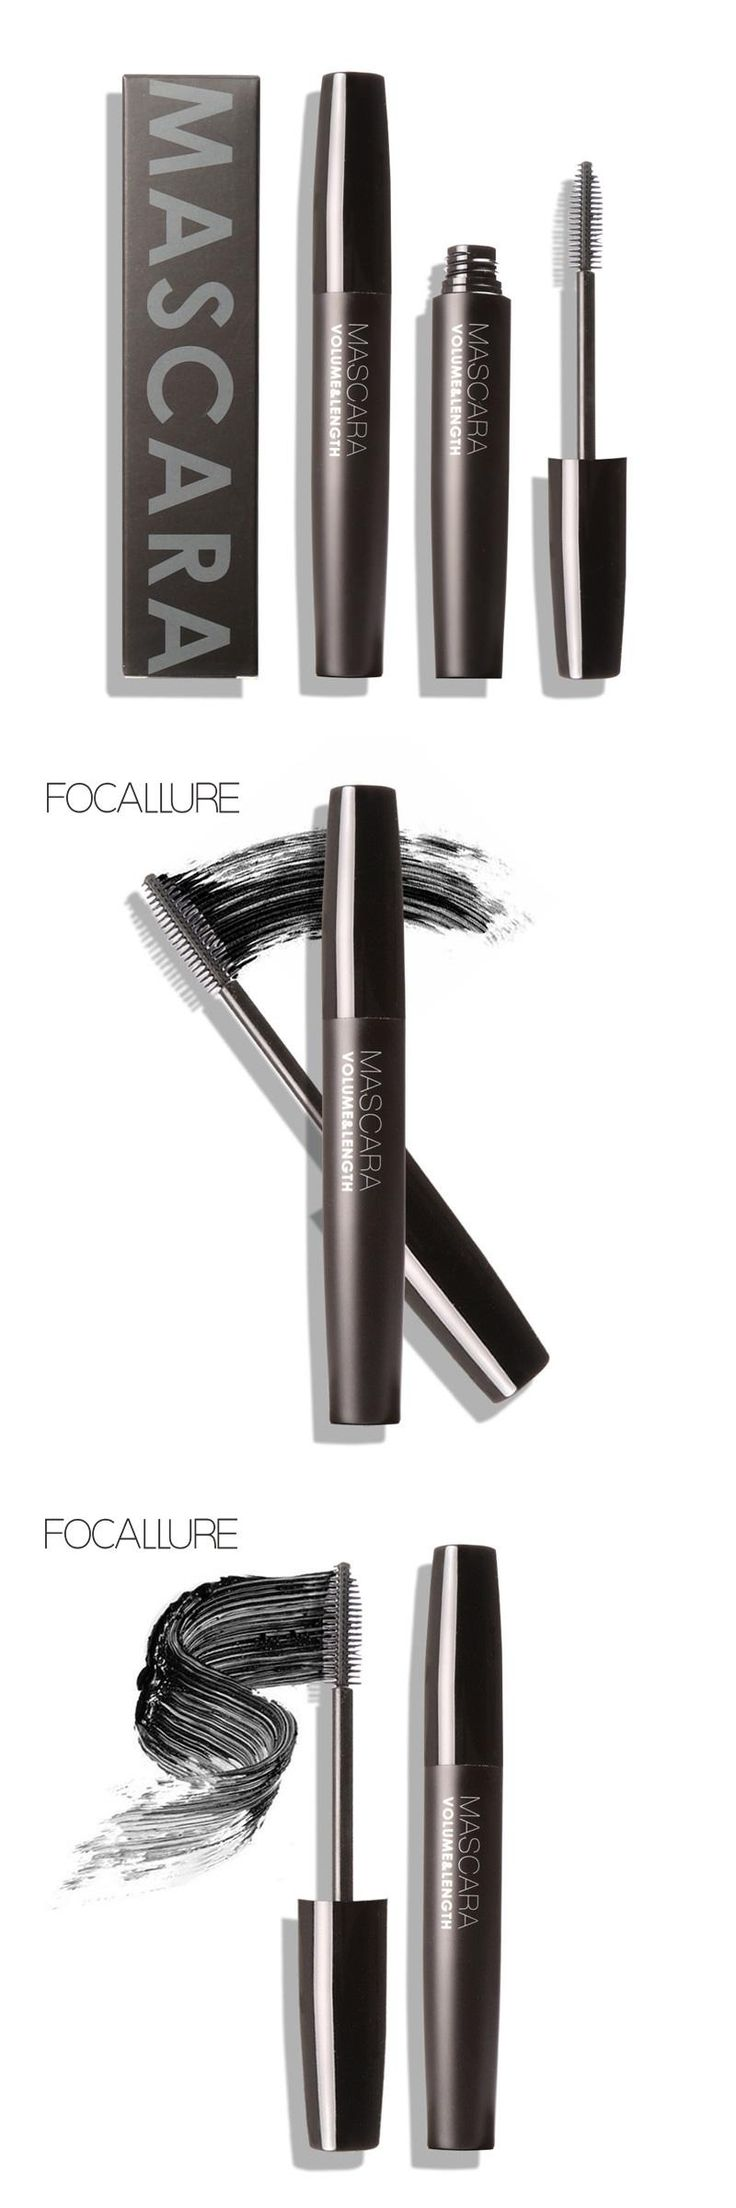 [Visit to Buy] 1PCS  Professional colossal Mascara Volume Express Makeup Eyelash Mascara Brand new for the eyes waterproof by focallure #Advertisement